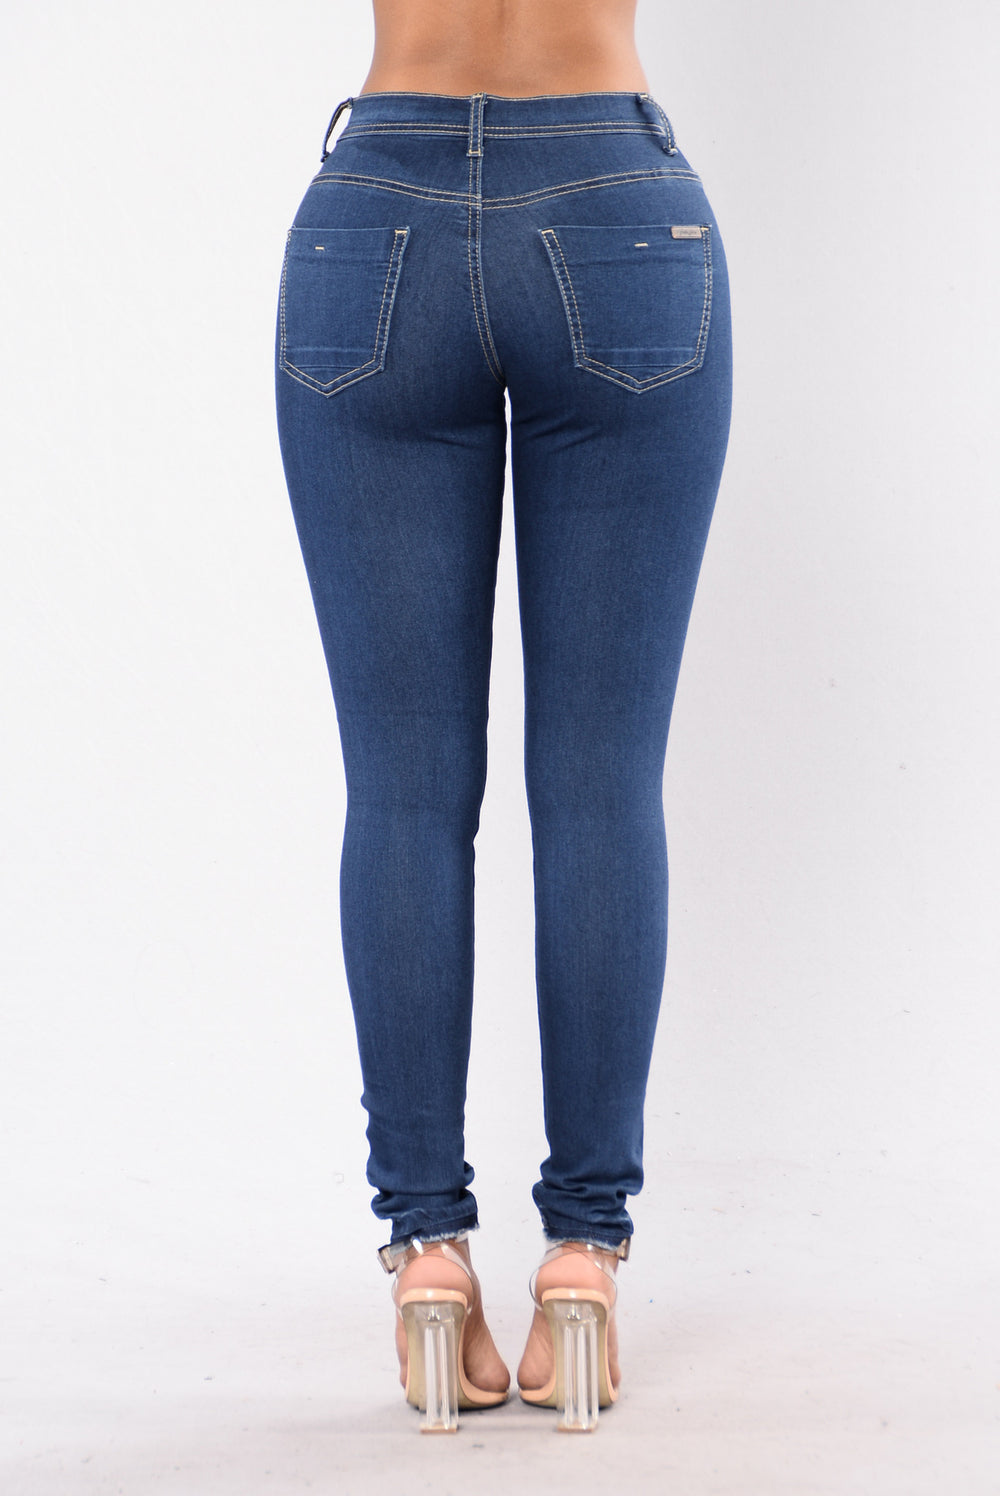 Super Ego Jeans - Dark Blue